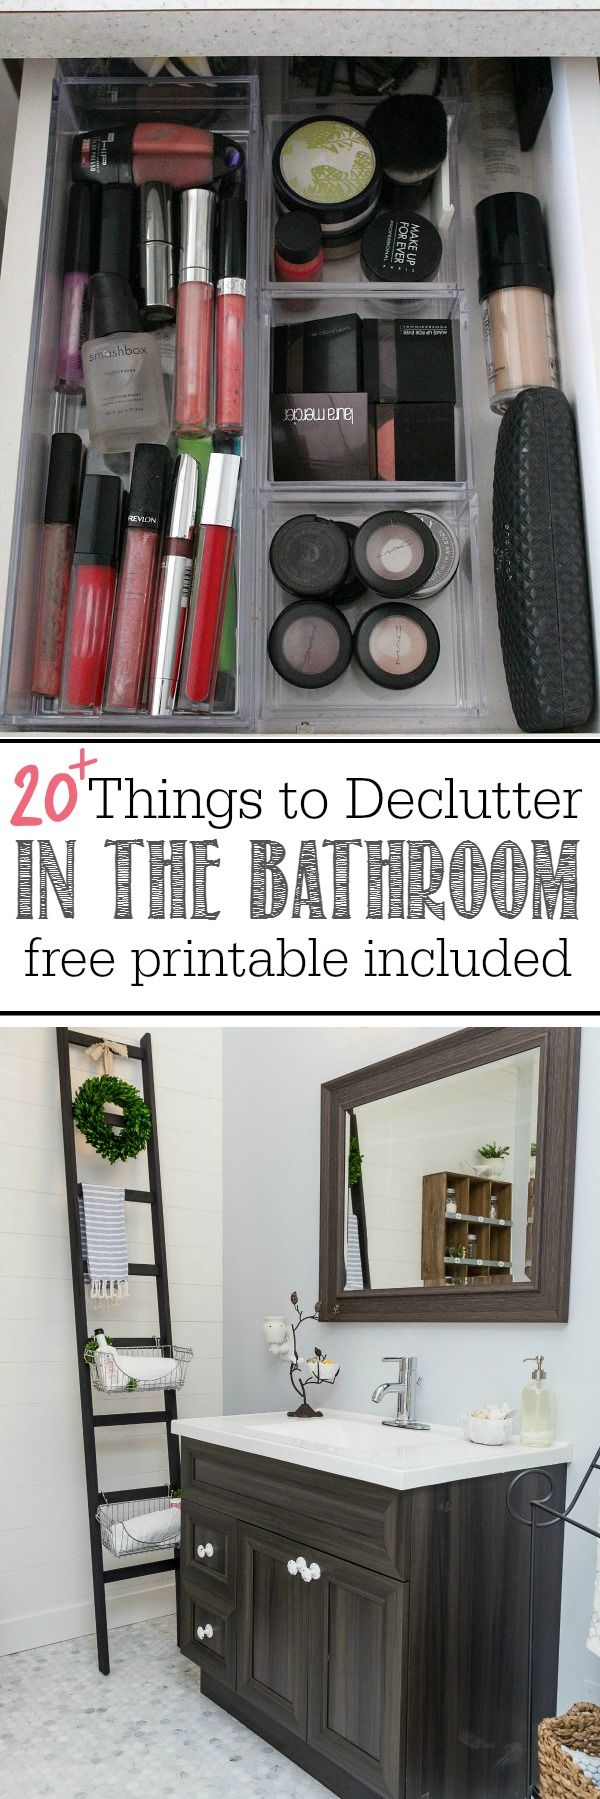 Declutter the Bathroom - 20 Items to Get Rid of Now - Clean and Scentsible